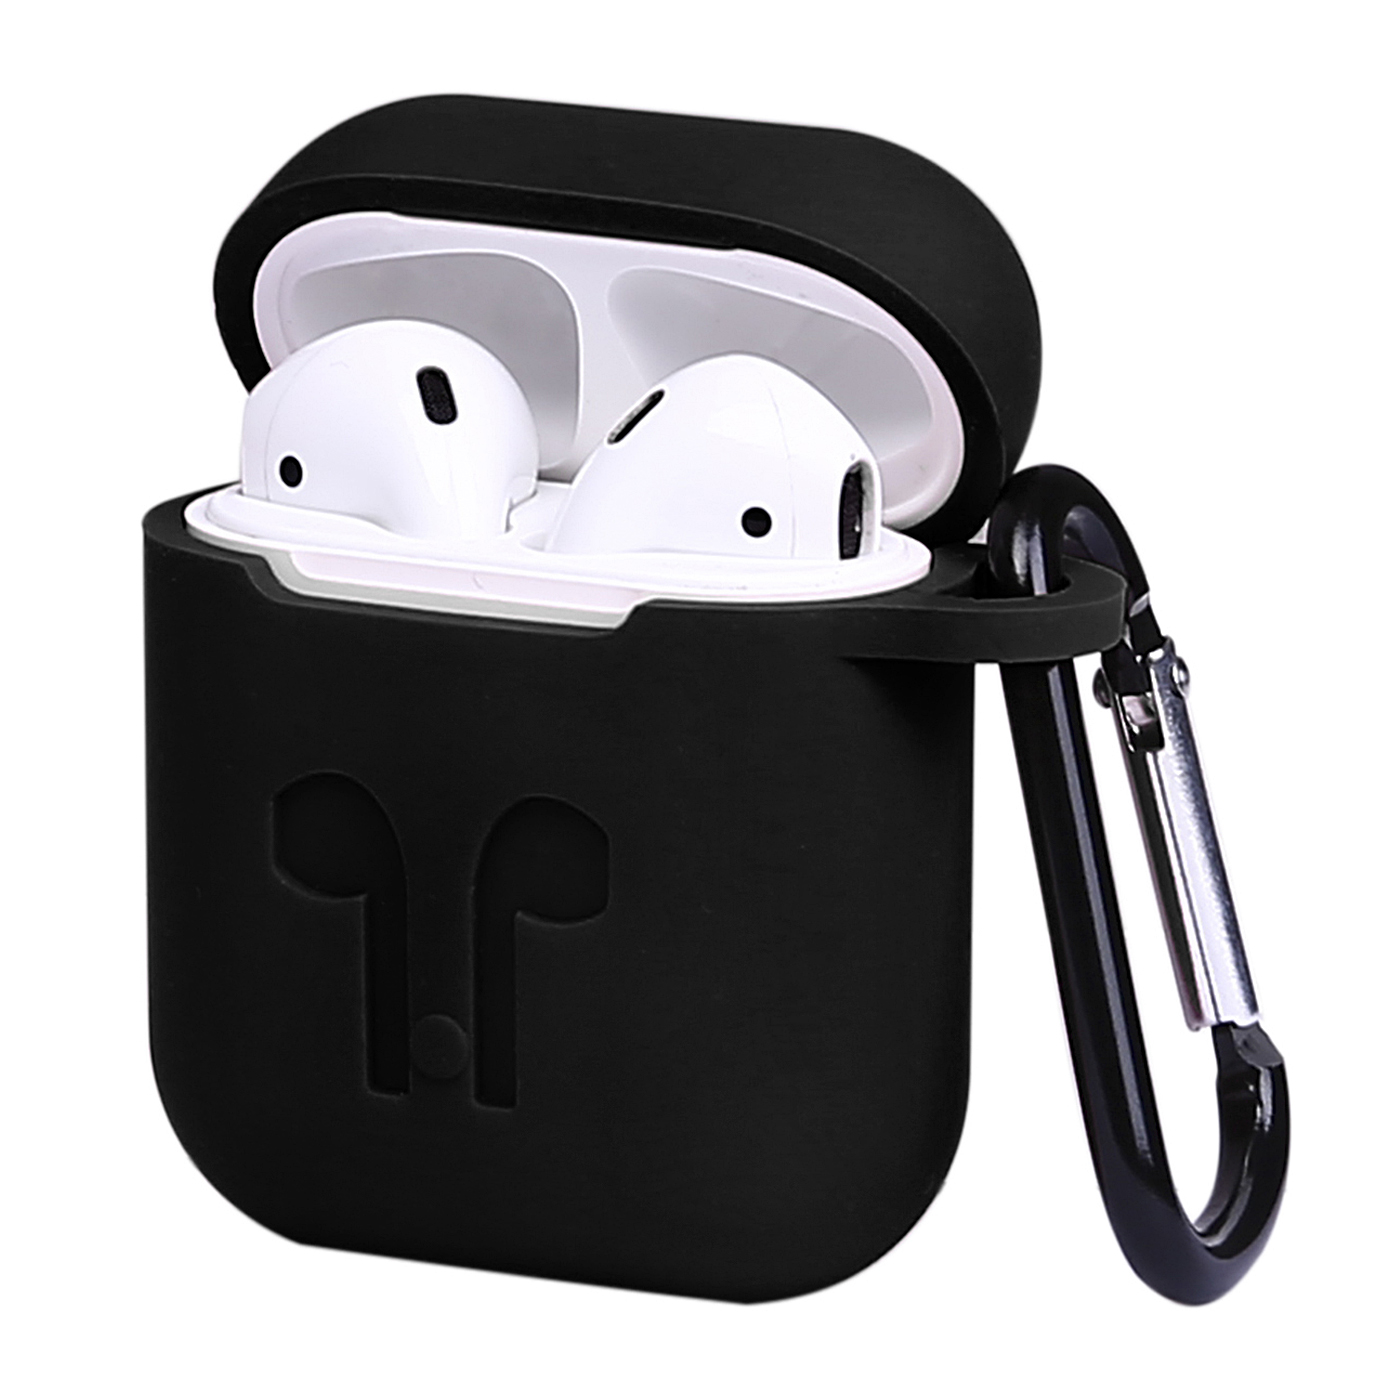 hde airpods case protective silicone cover and skin for apple airpods charging case with carabiner keychain belt clip red